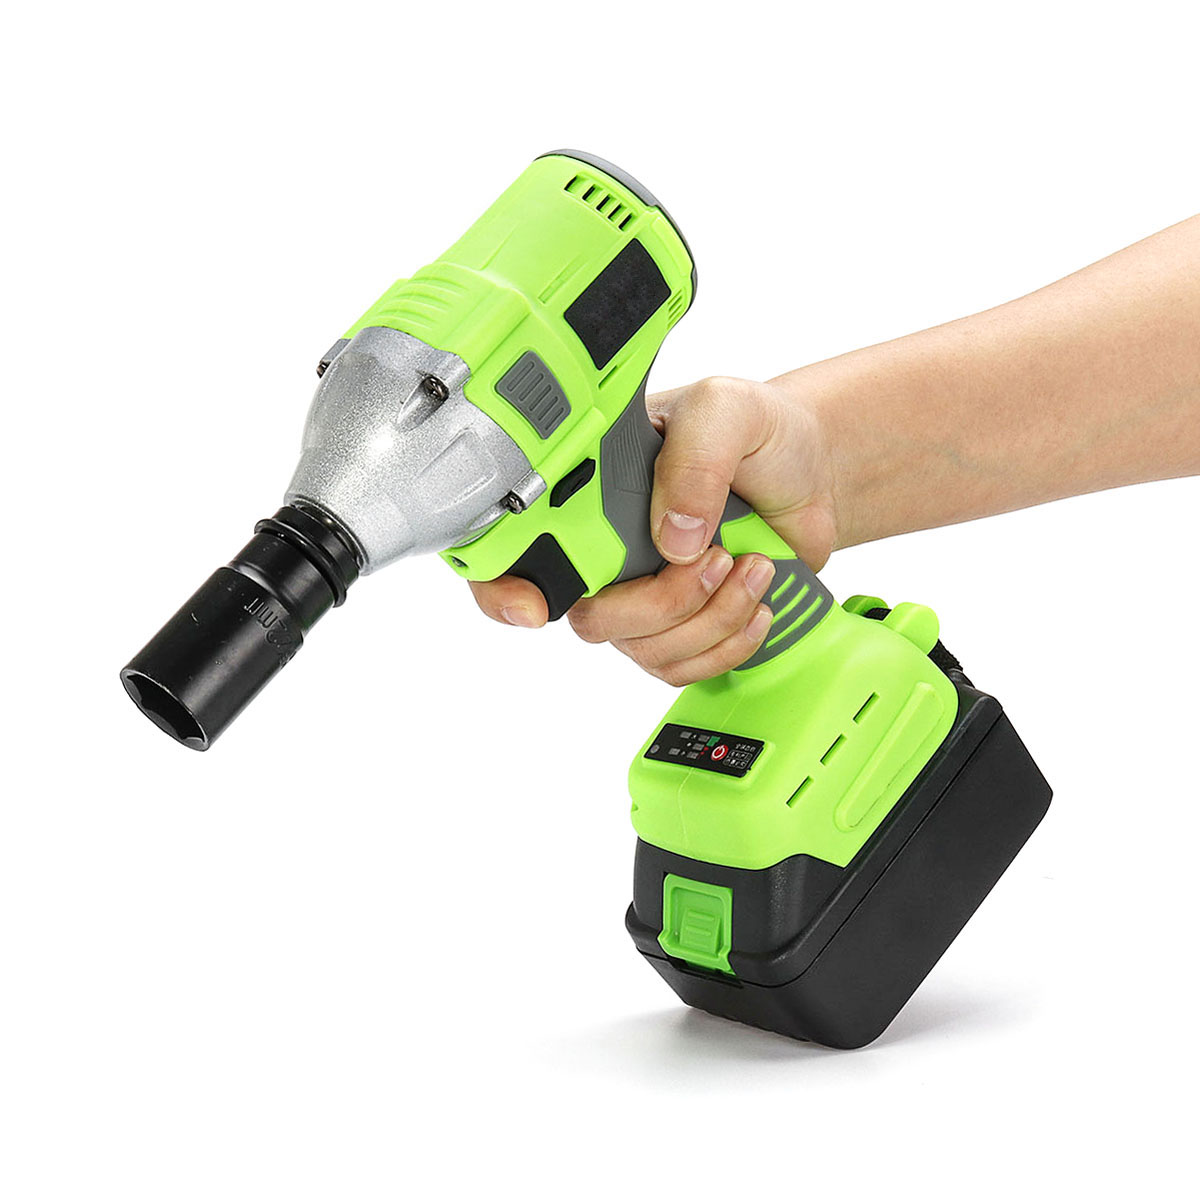 Newest Cordless Electric Wrench Driver Drill 320N.m Impact Socket Wrench 20000mAh Battery Hand Drill Installation Power ToolsNewest Cordless Electric Wrench Driver Drill 320N.m Impact Socket Wrench 20000mAh Battery Hand Drill Installation Power Tools